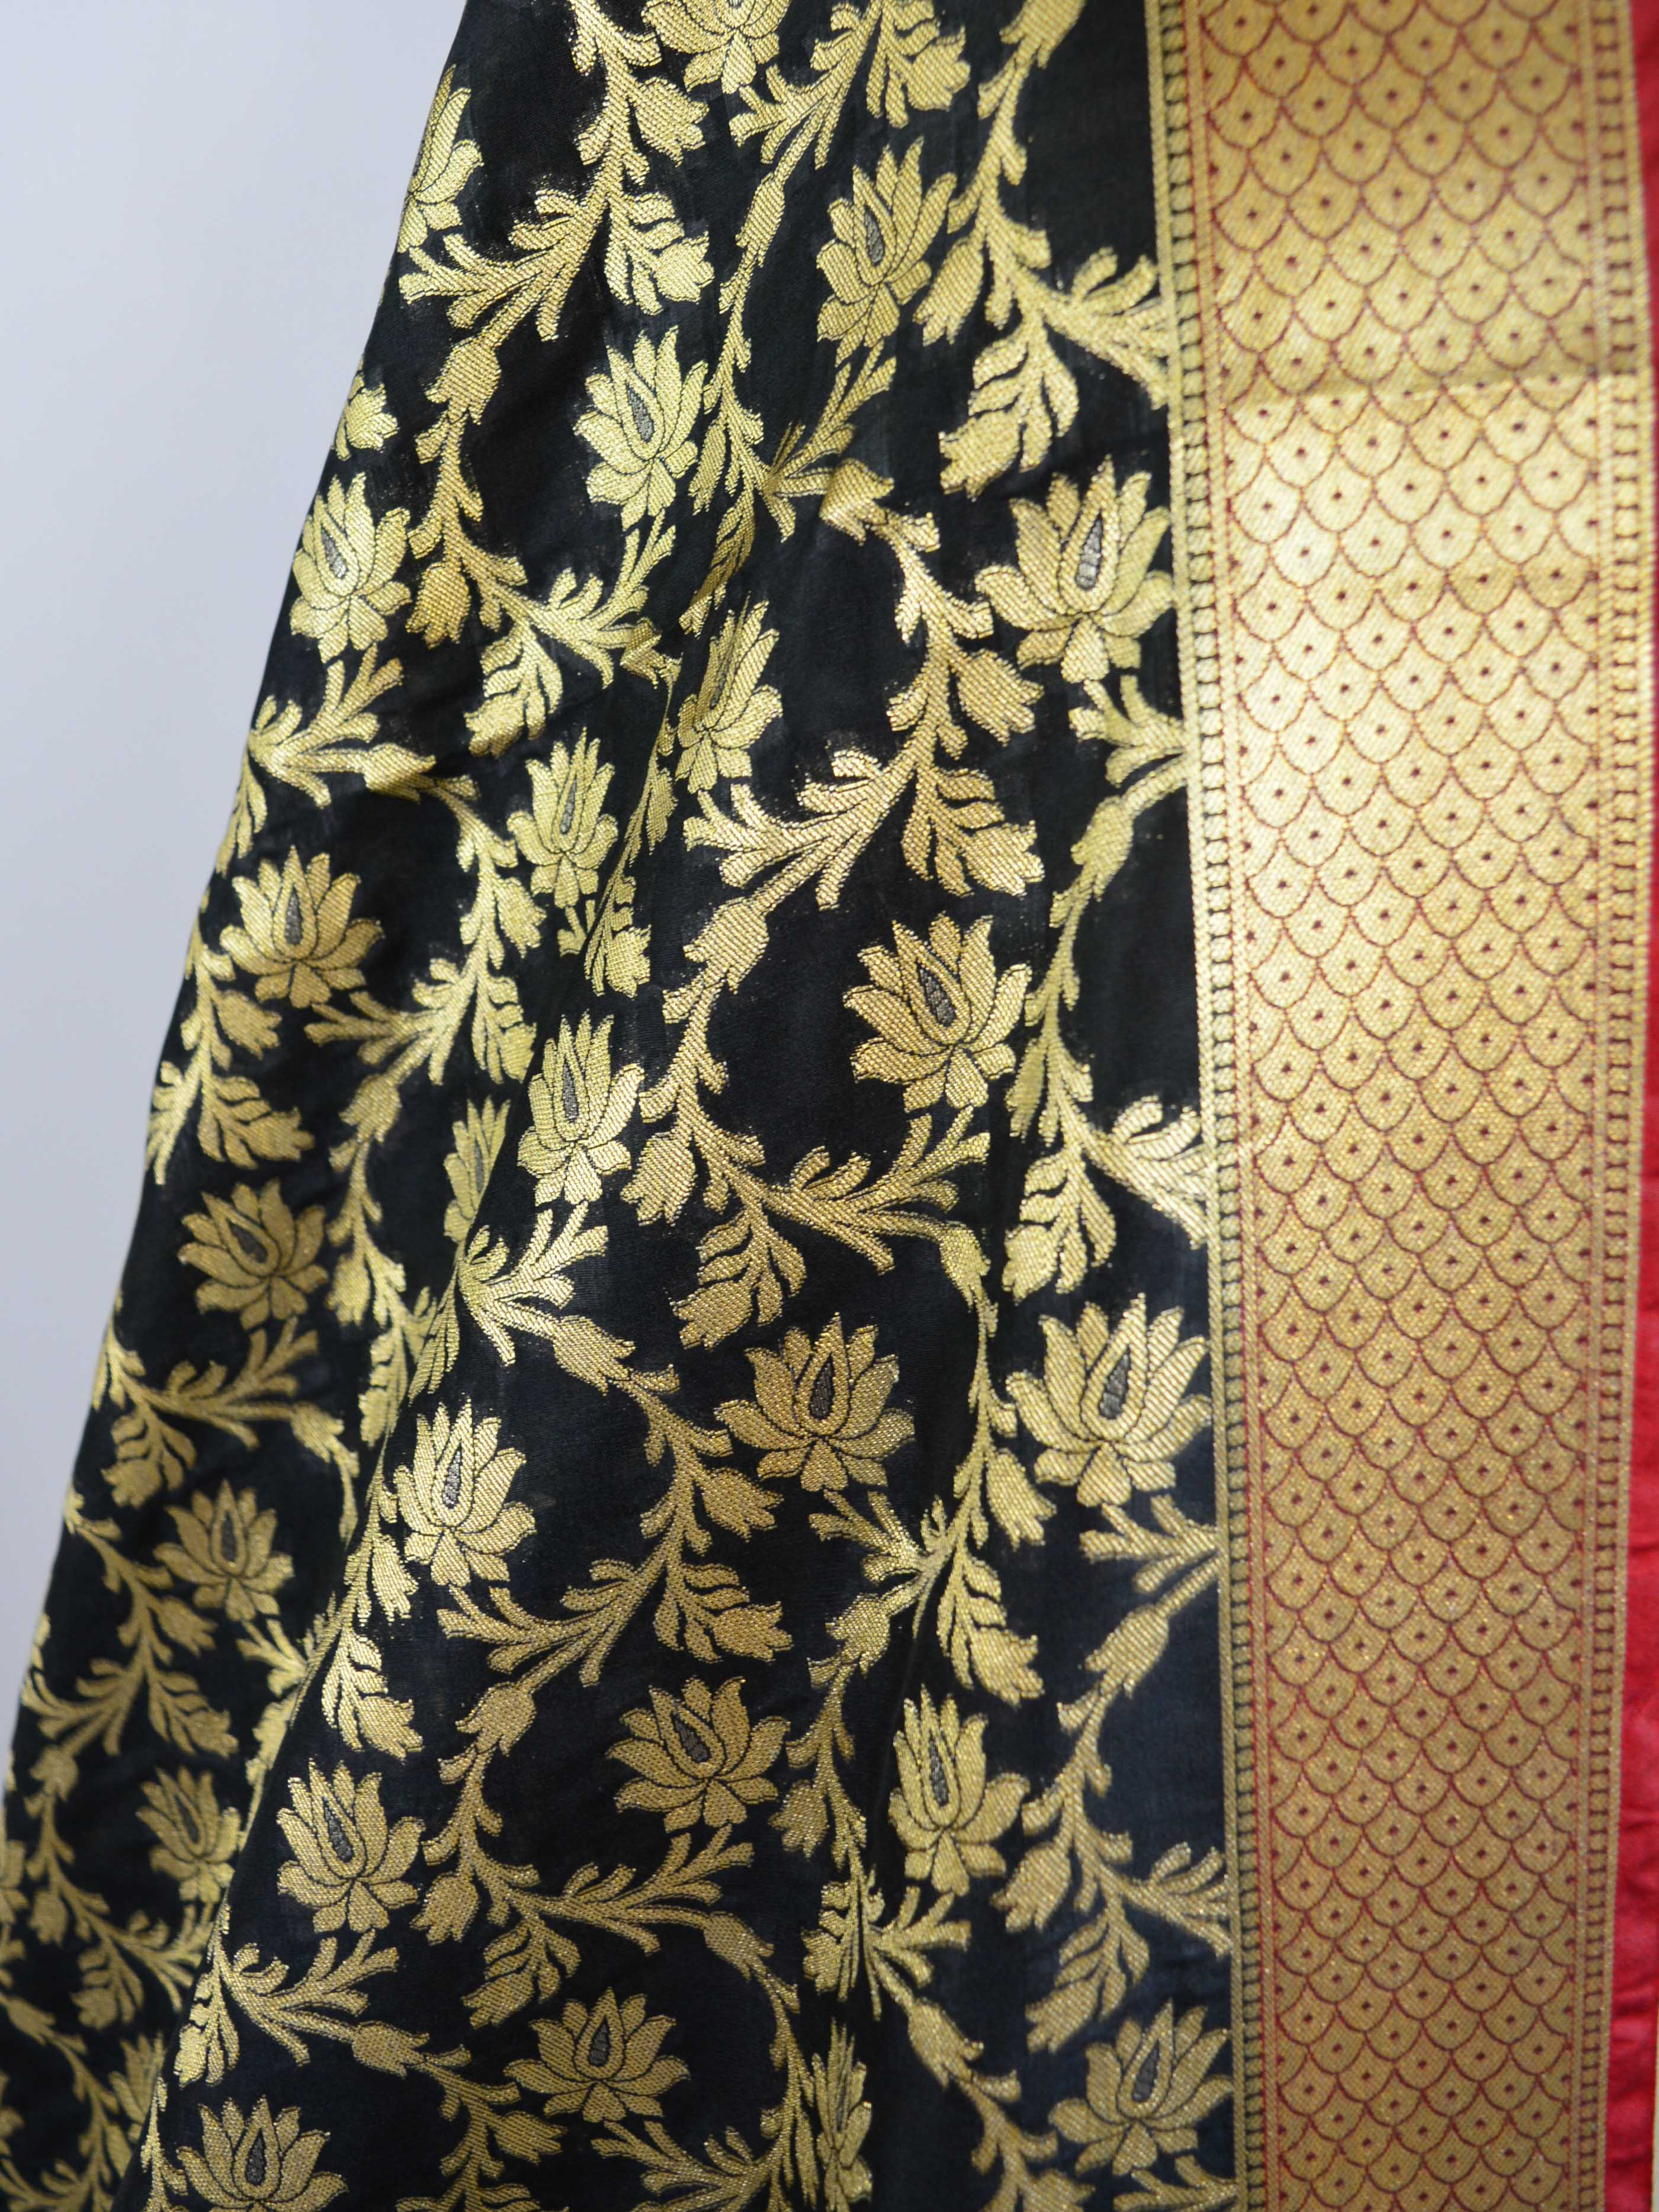 Banarasee Art Silk Dupatta With Gold Zari Jaal Design-Black